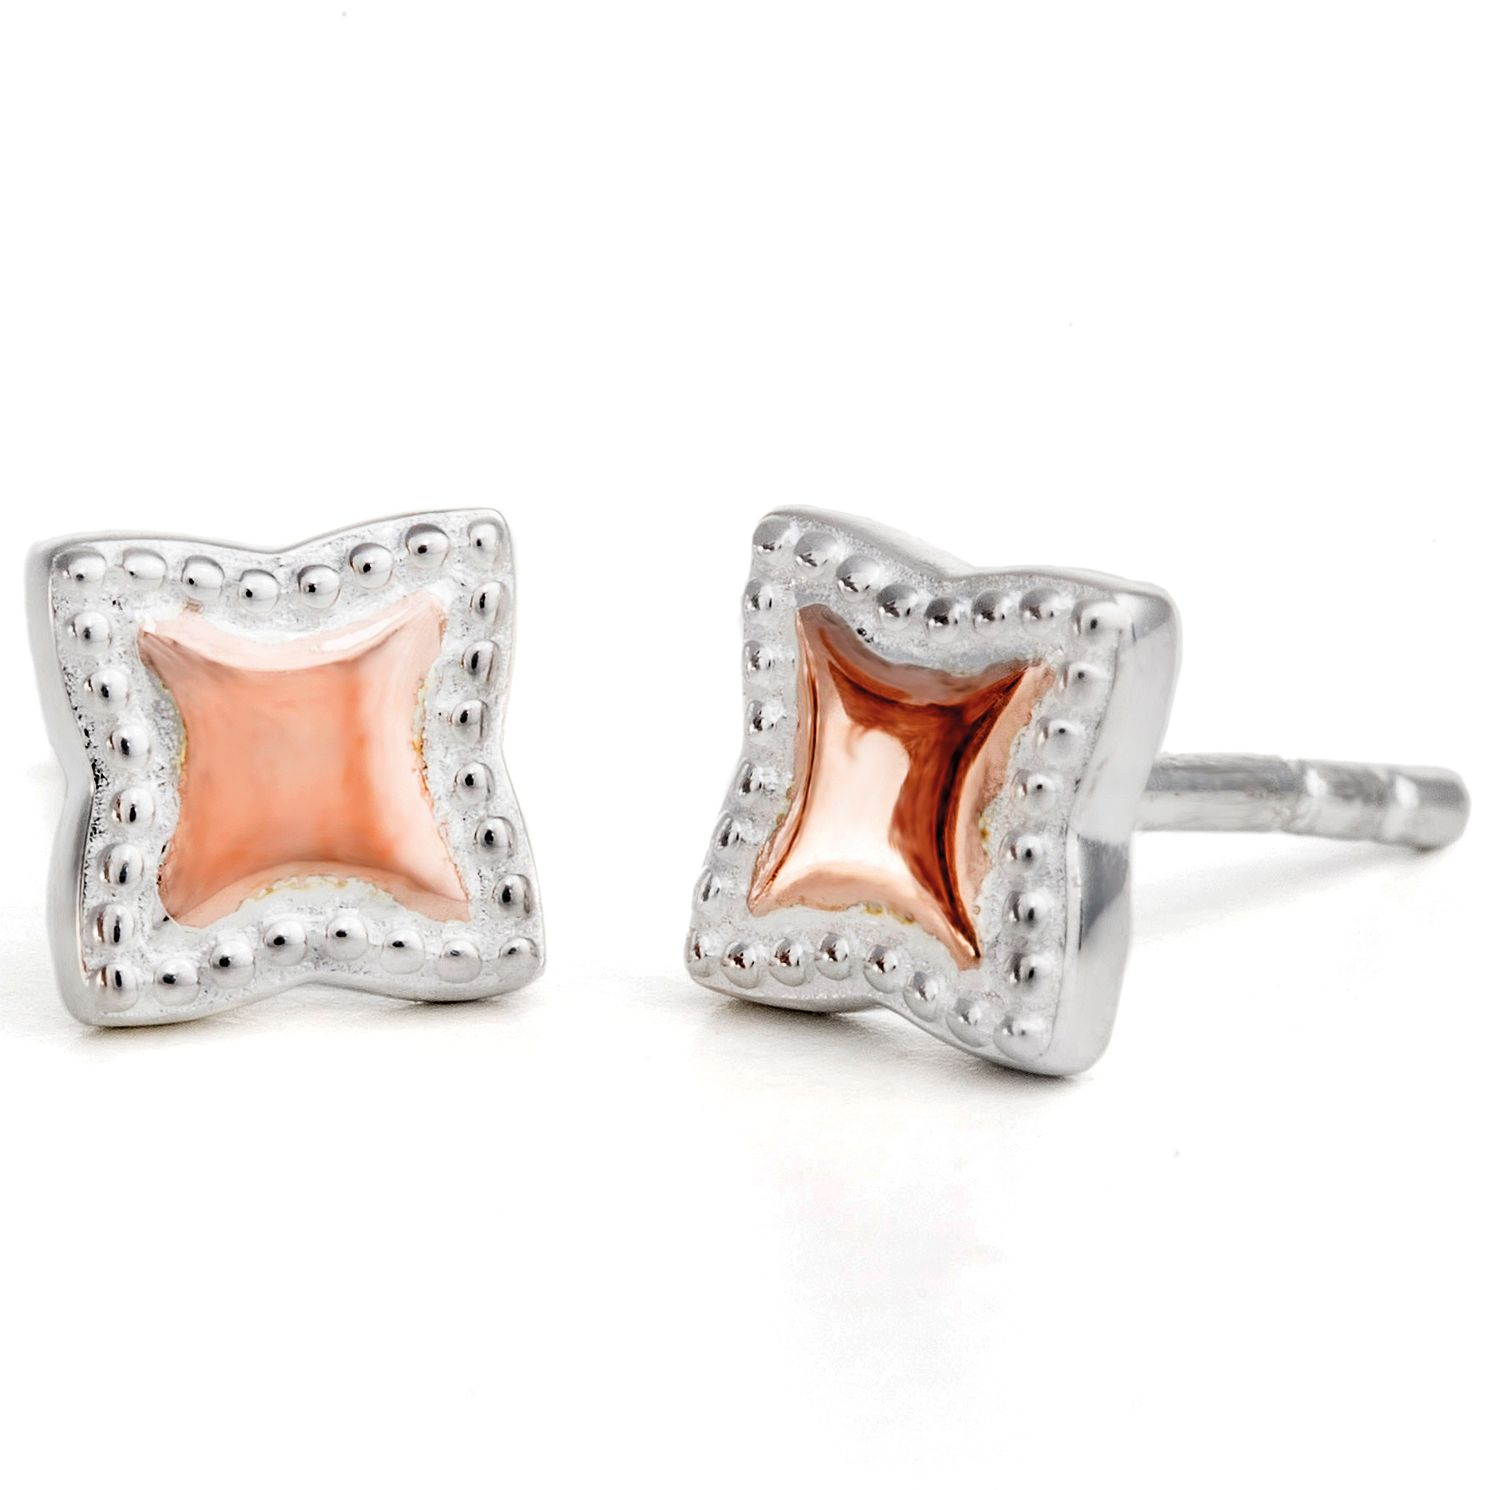 Chamilia Silver & Rose Gold-Plated Petite Star Stud Earrings - Product number 5127432